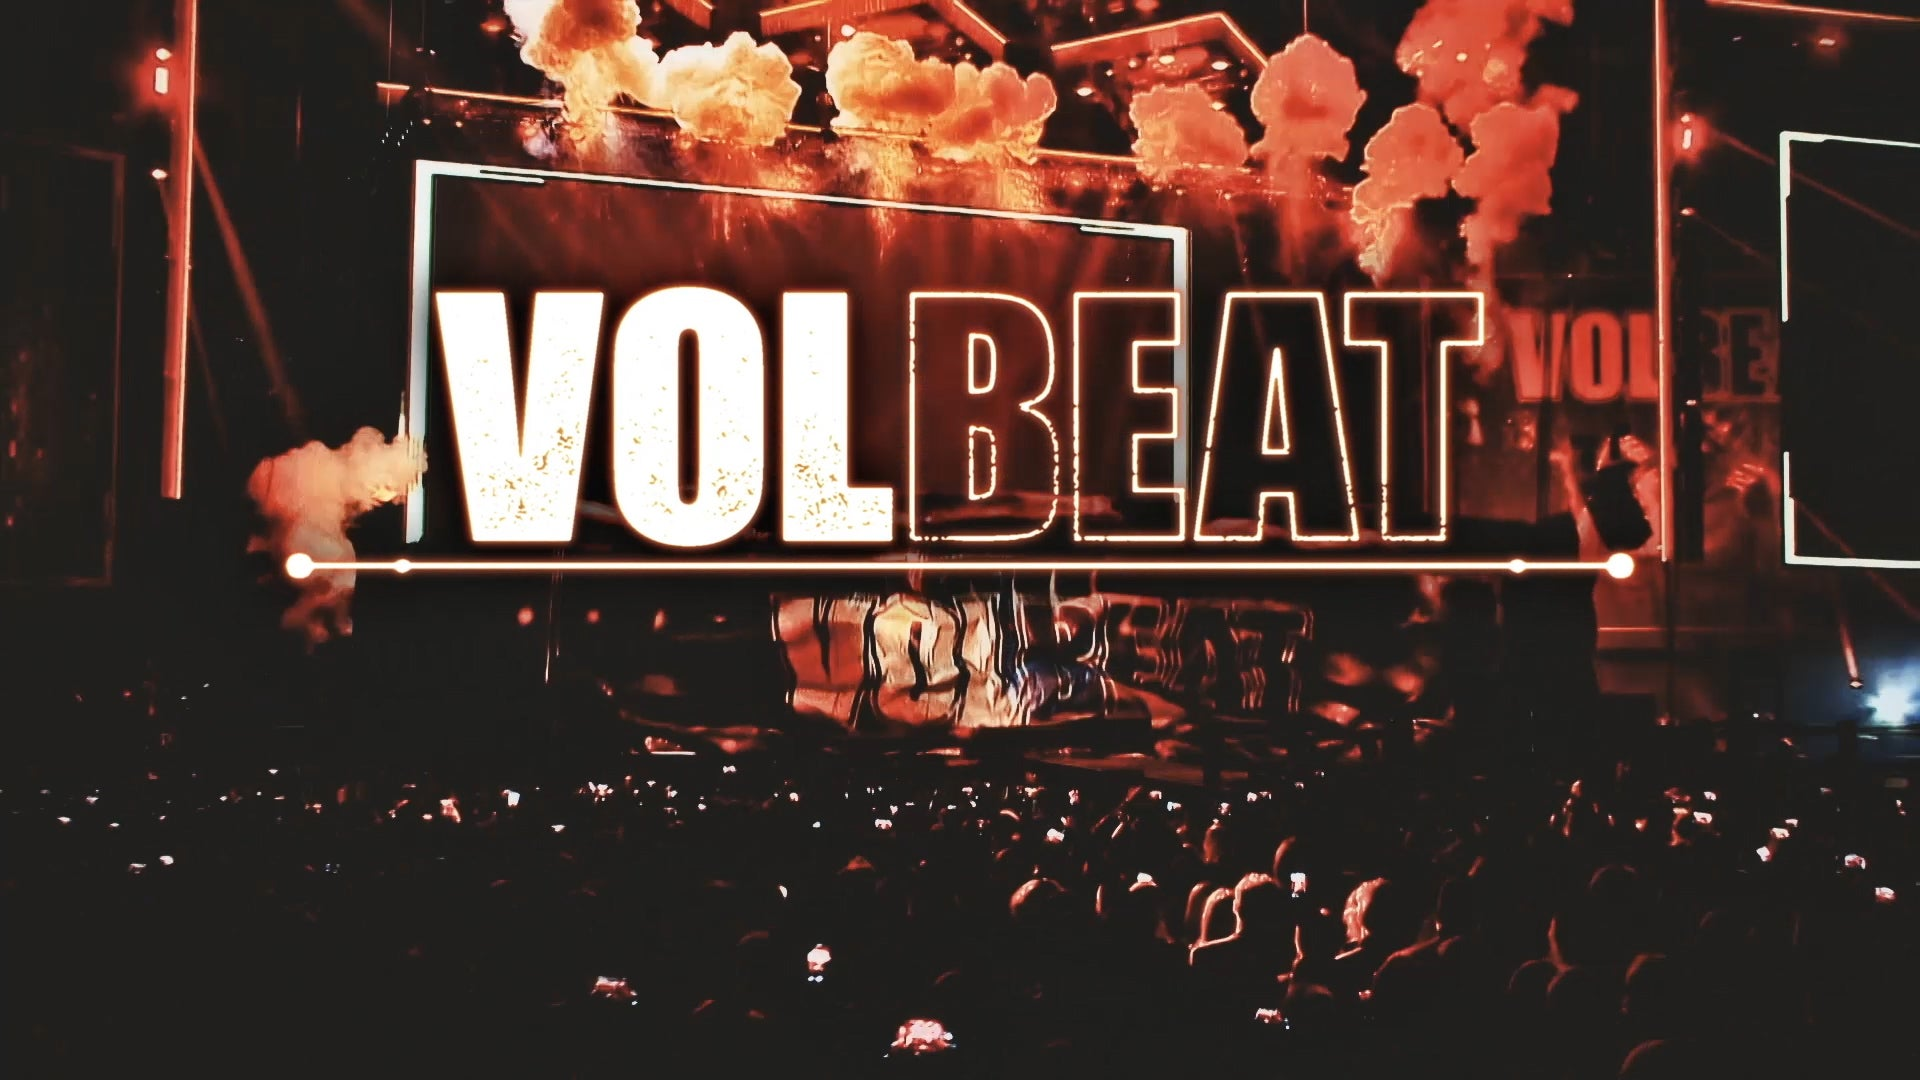 Volbeat_Trailer_2019.jpg